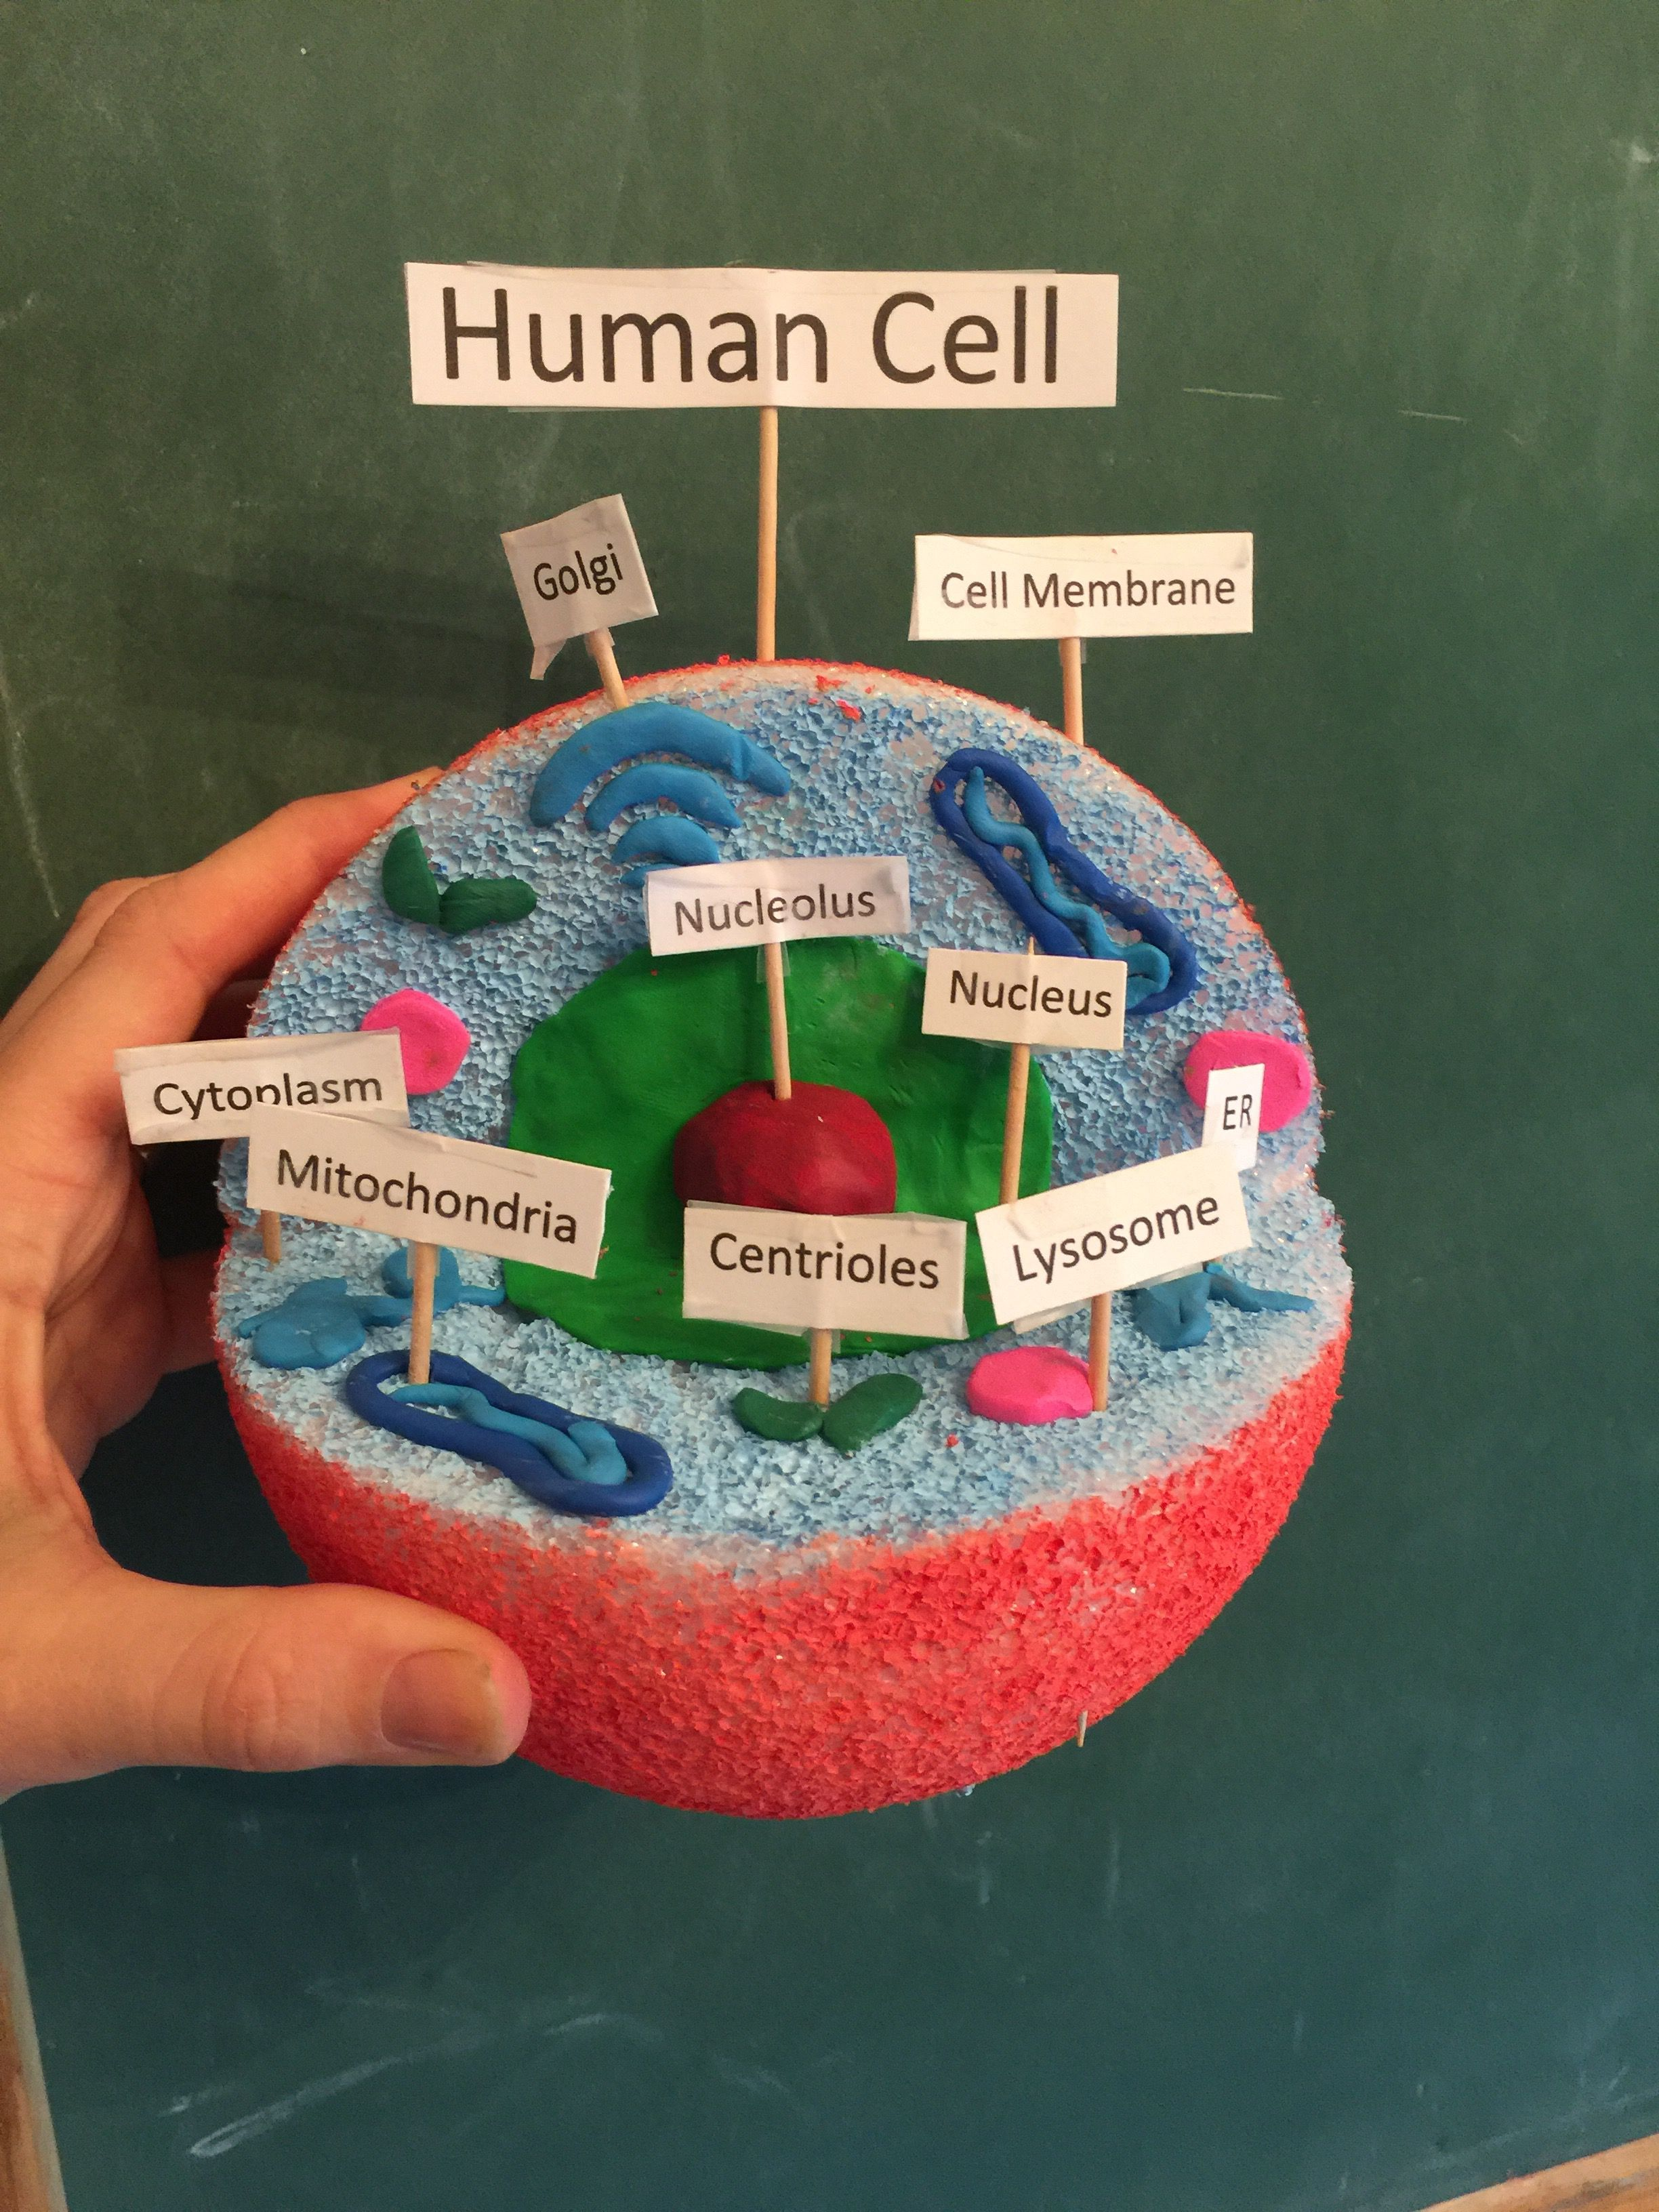 Human Cell Model